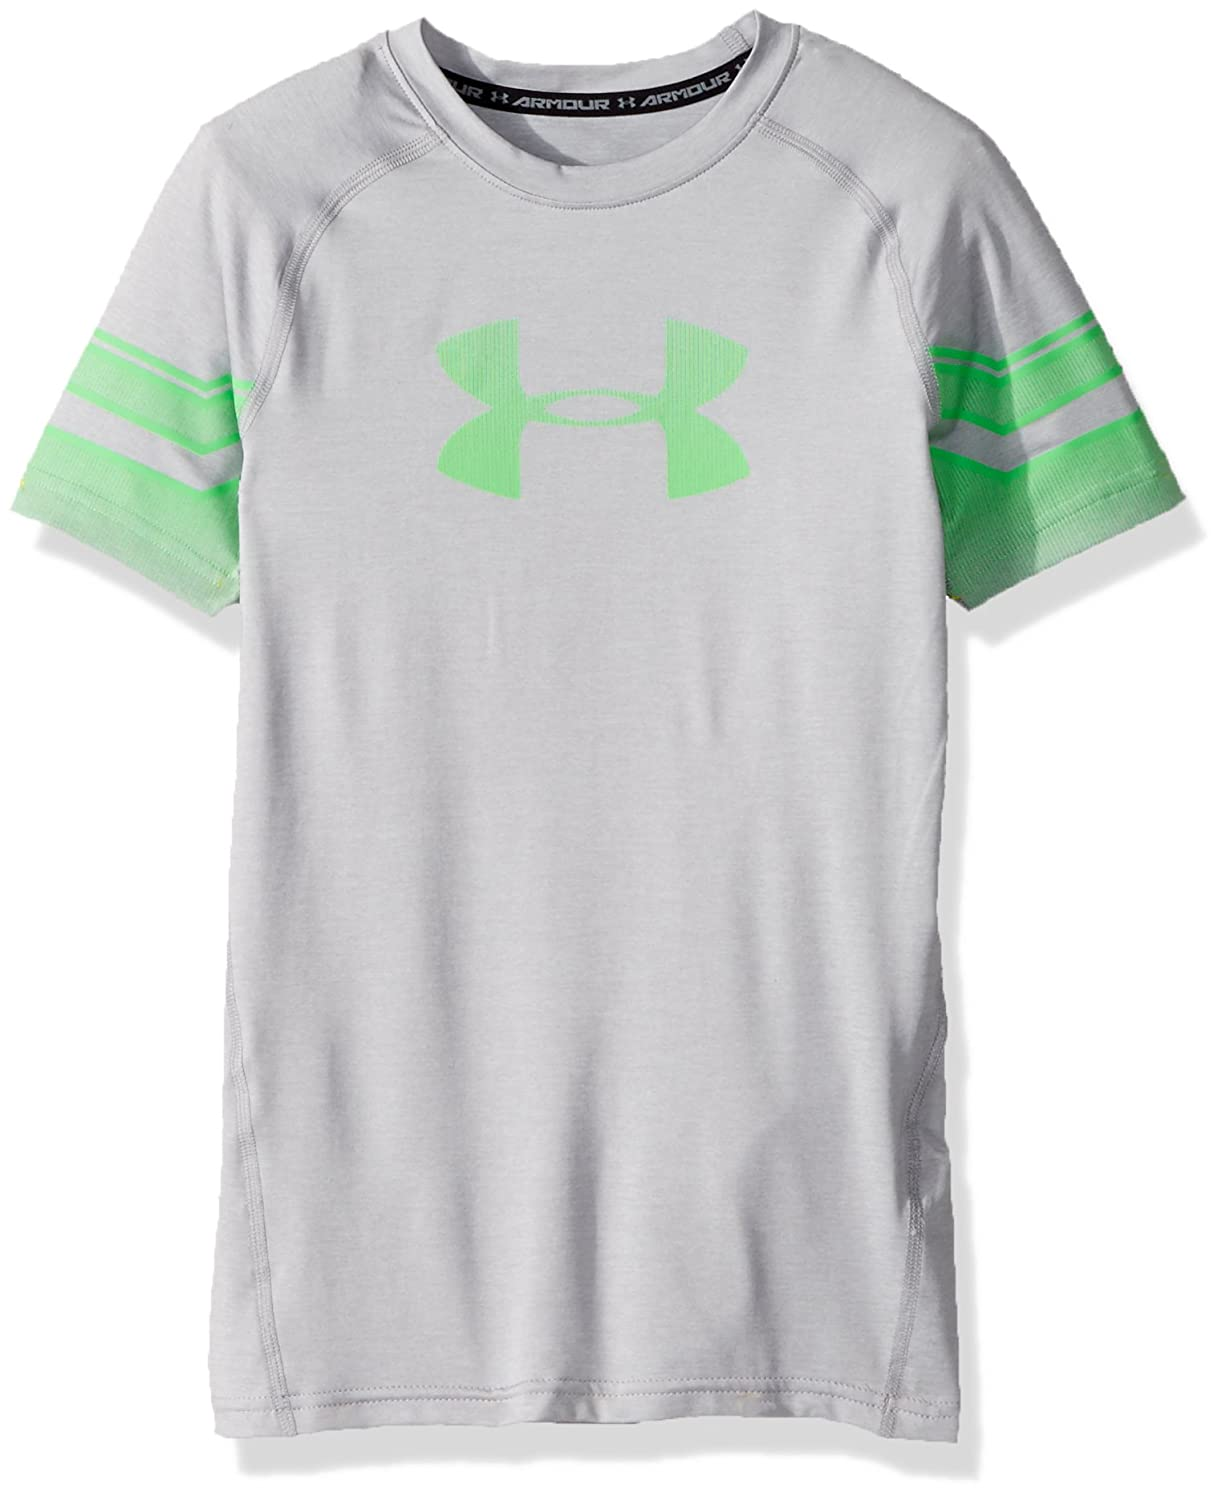 Under Armour Boys Graphic Short Sleeve